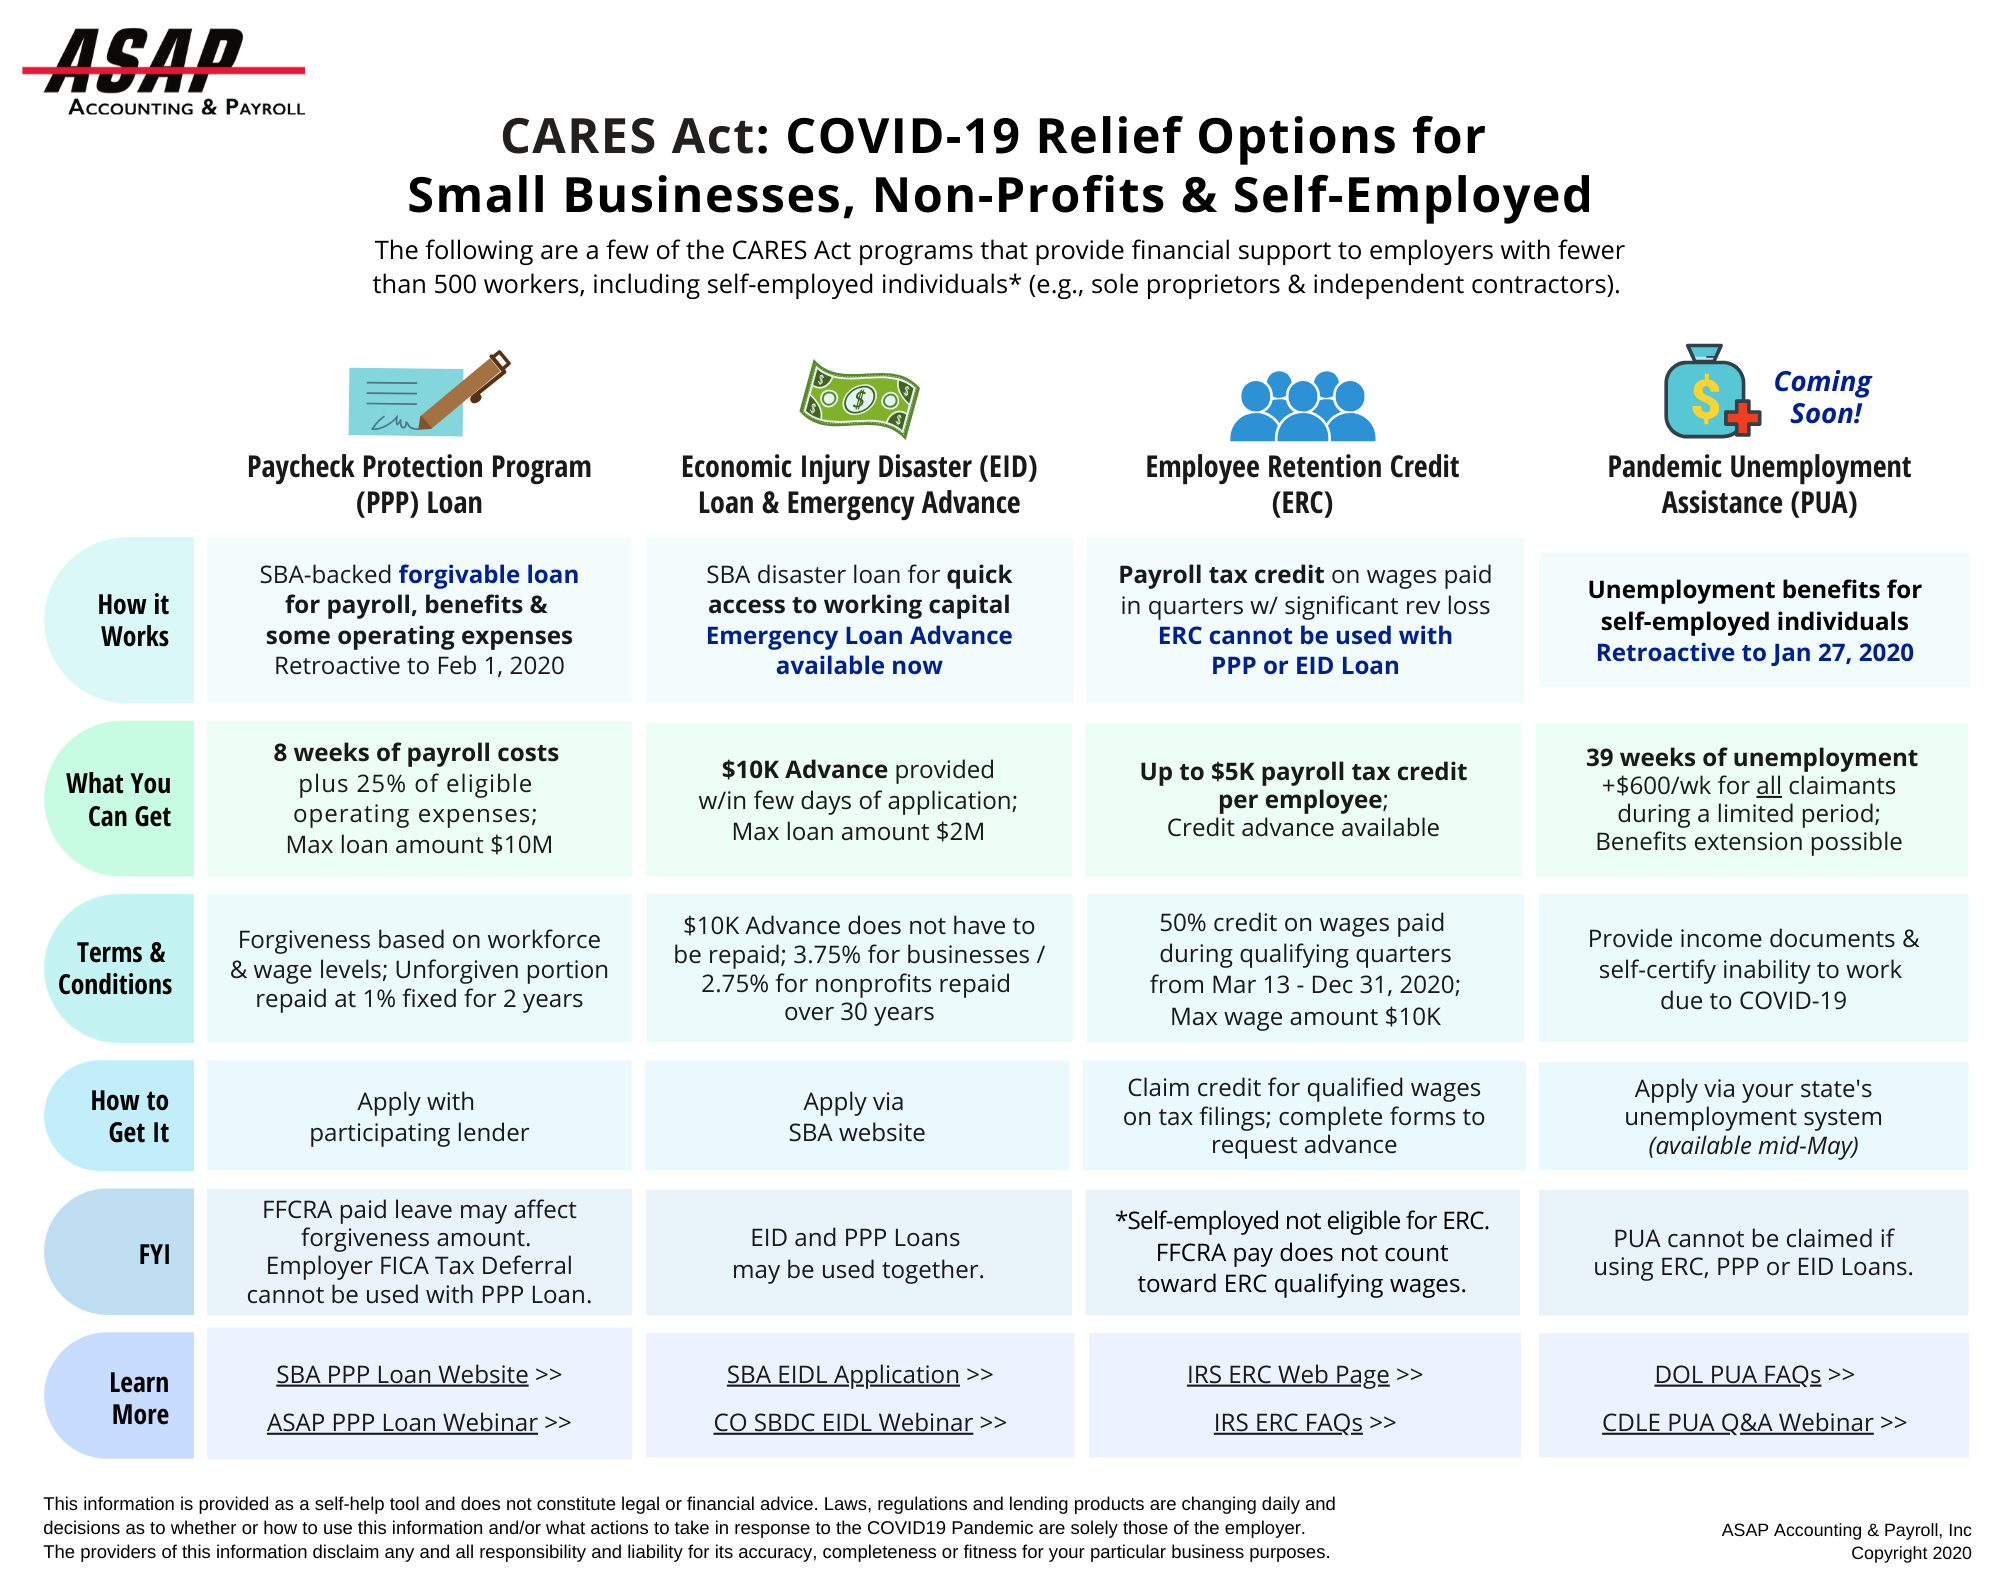 CARES Act Business Relief Options Comparison